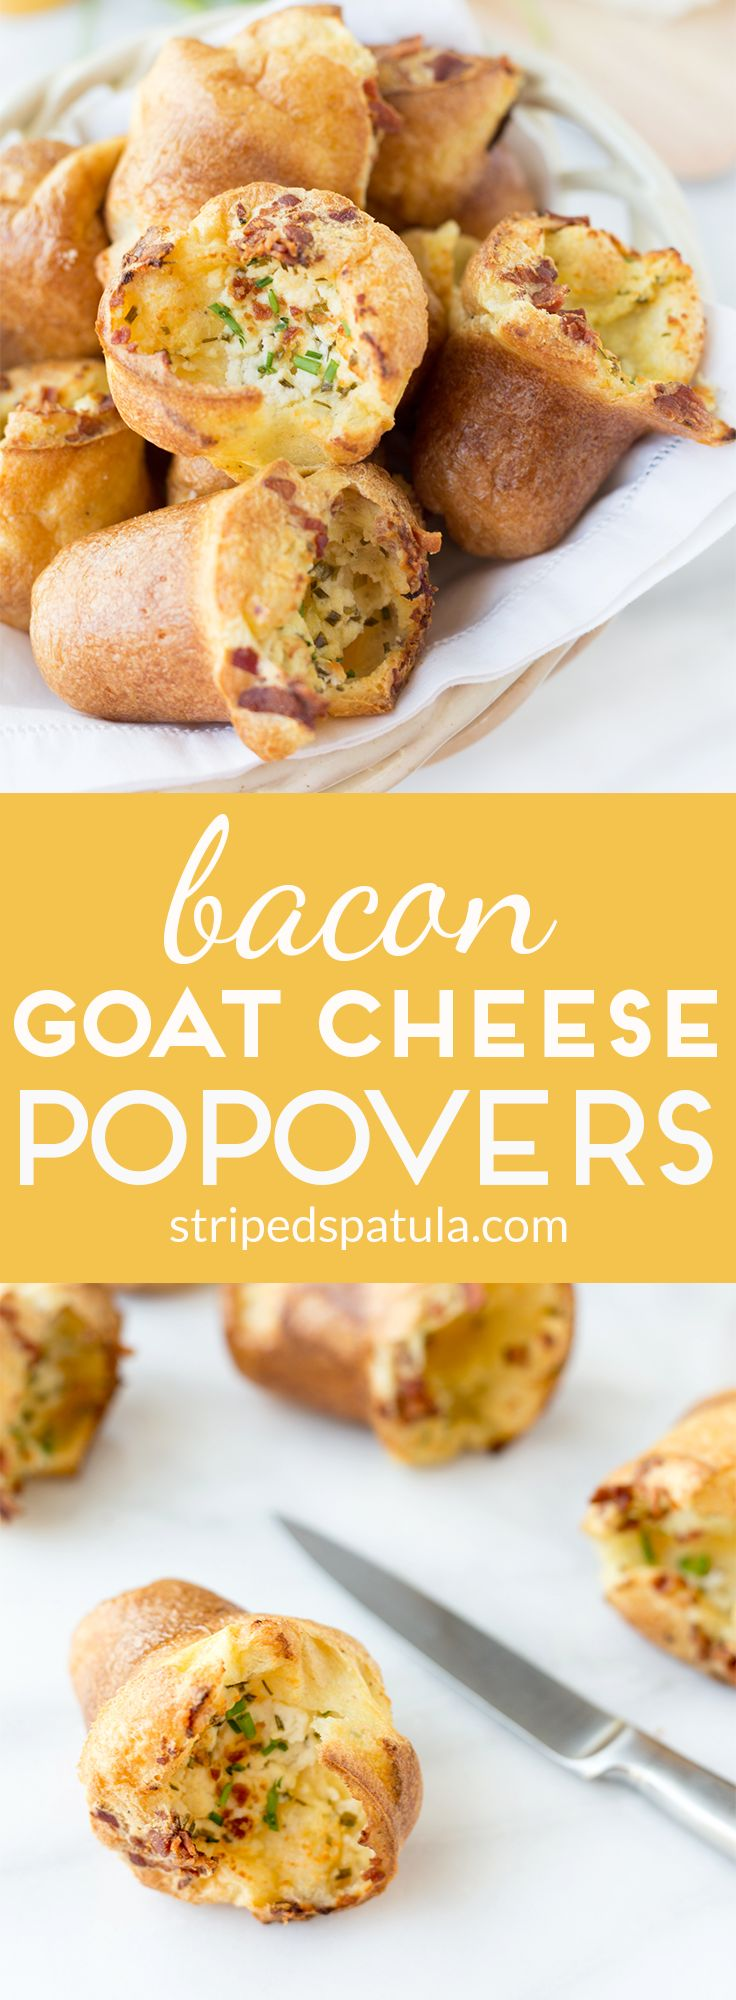 Bacon and Goat Cheese Popovers   Recipe   Bacon, Goat ...